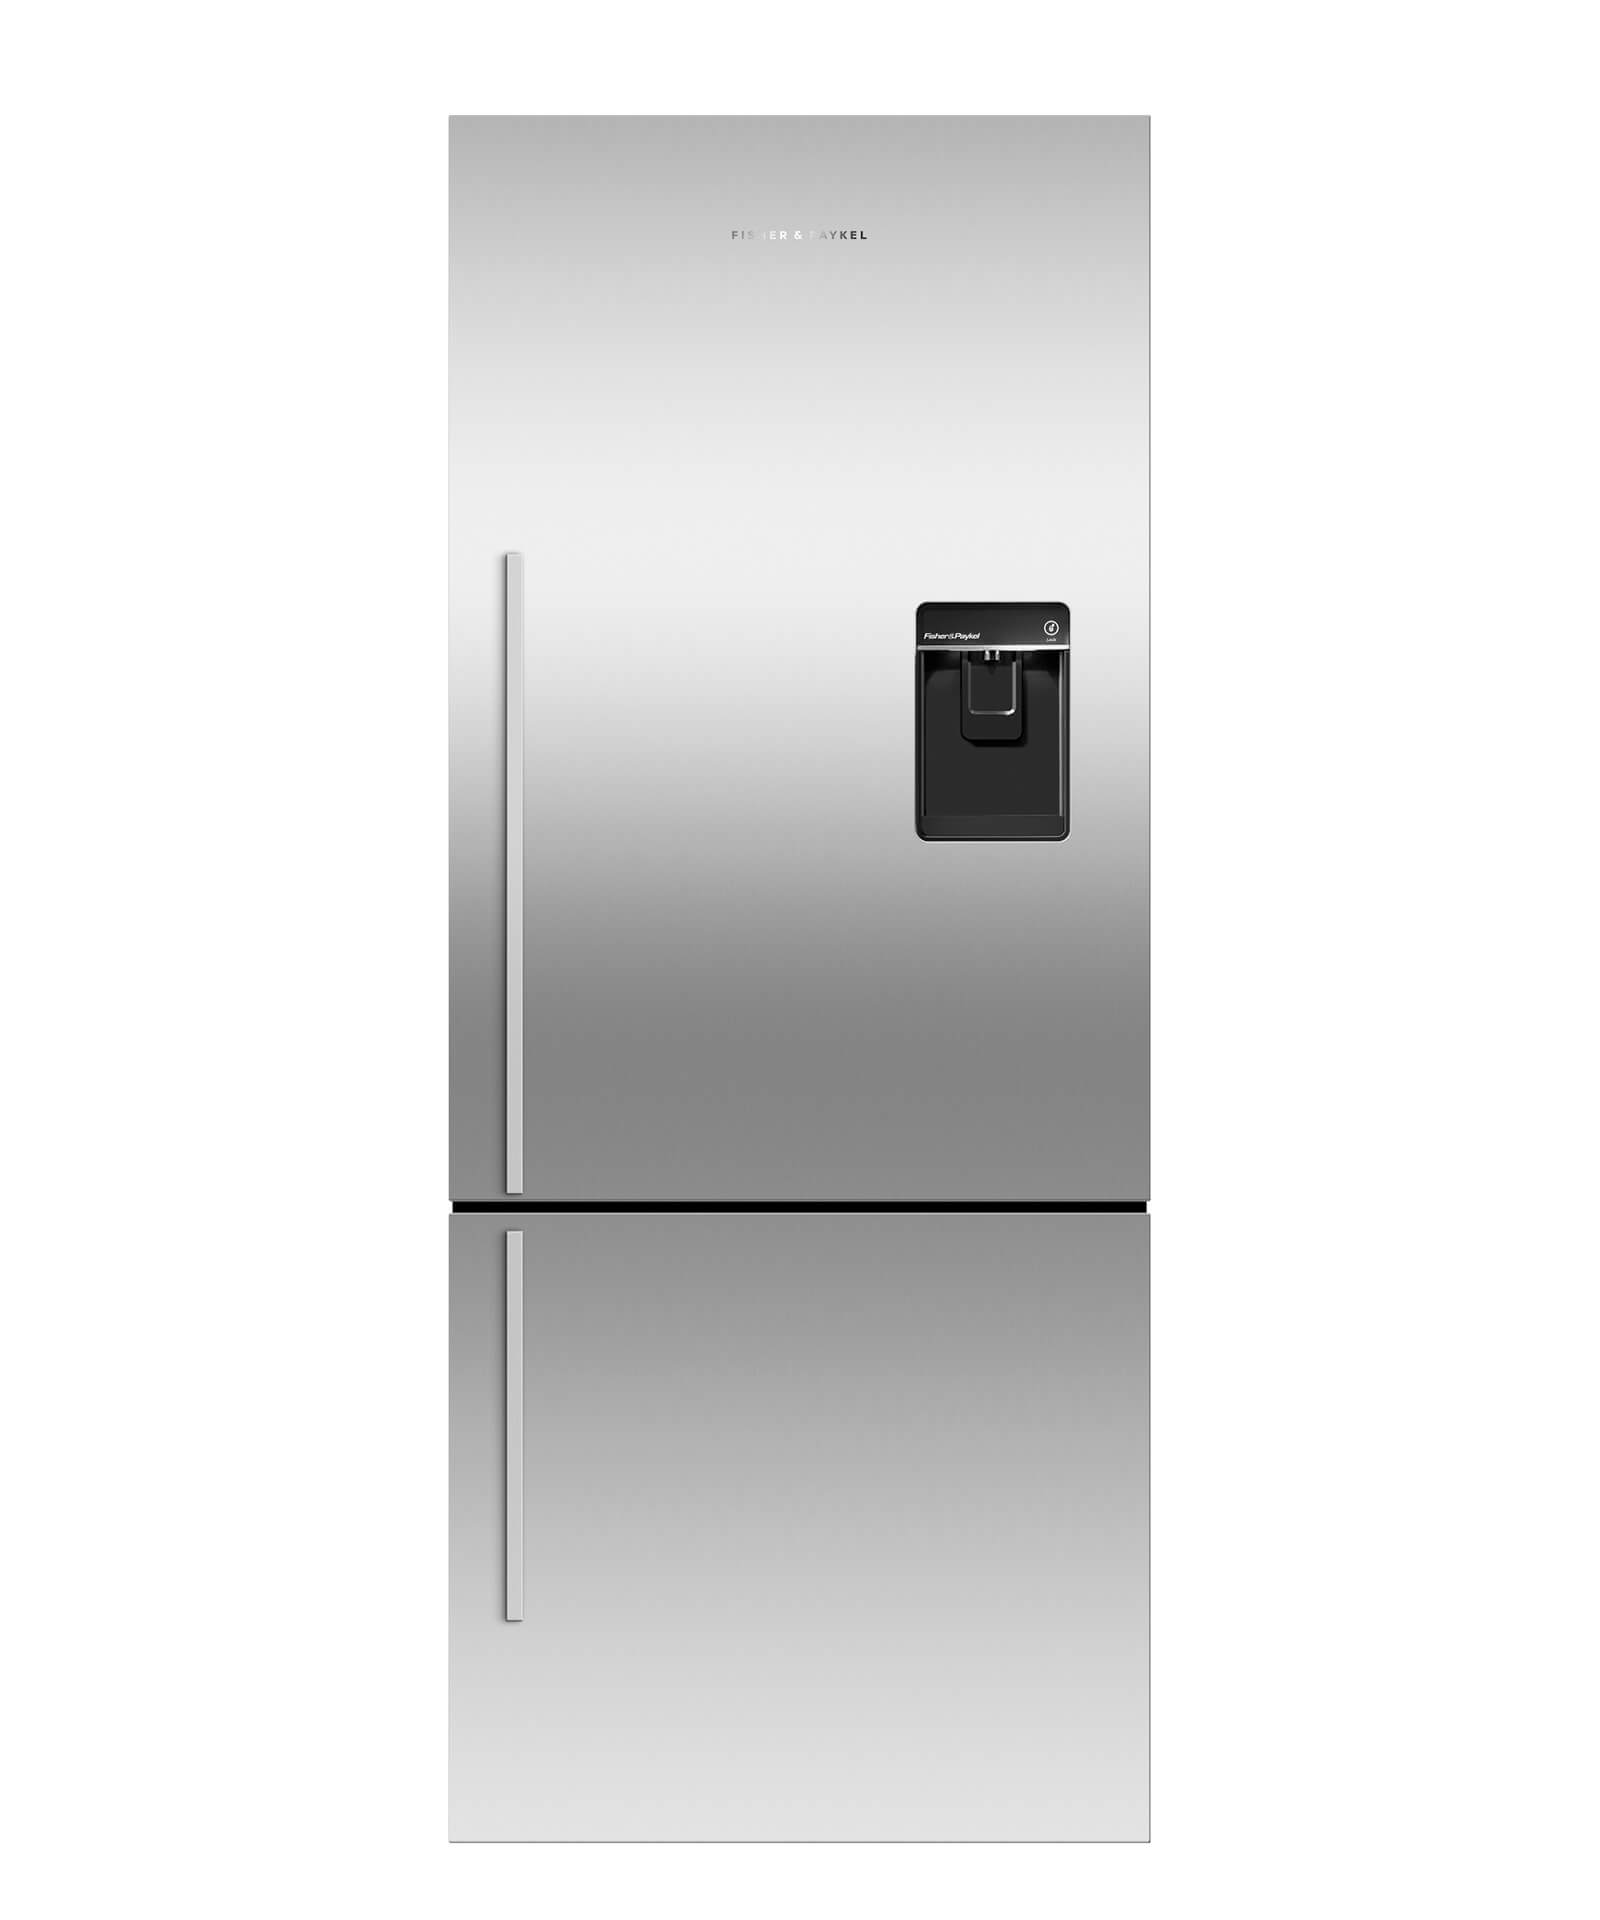 fisher and paykel e522b service manual